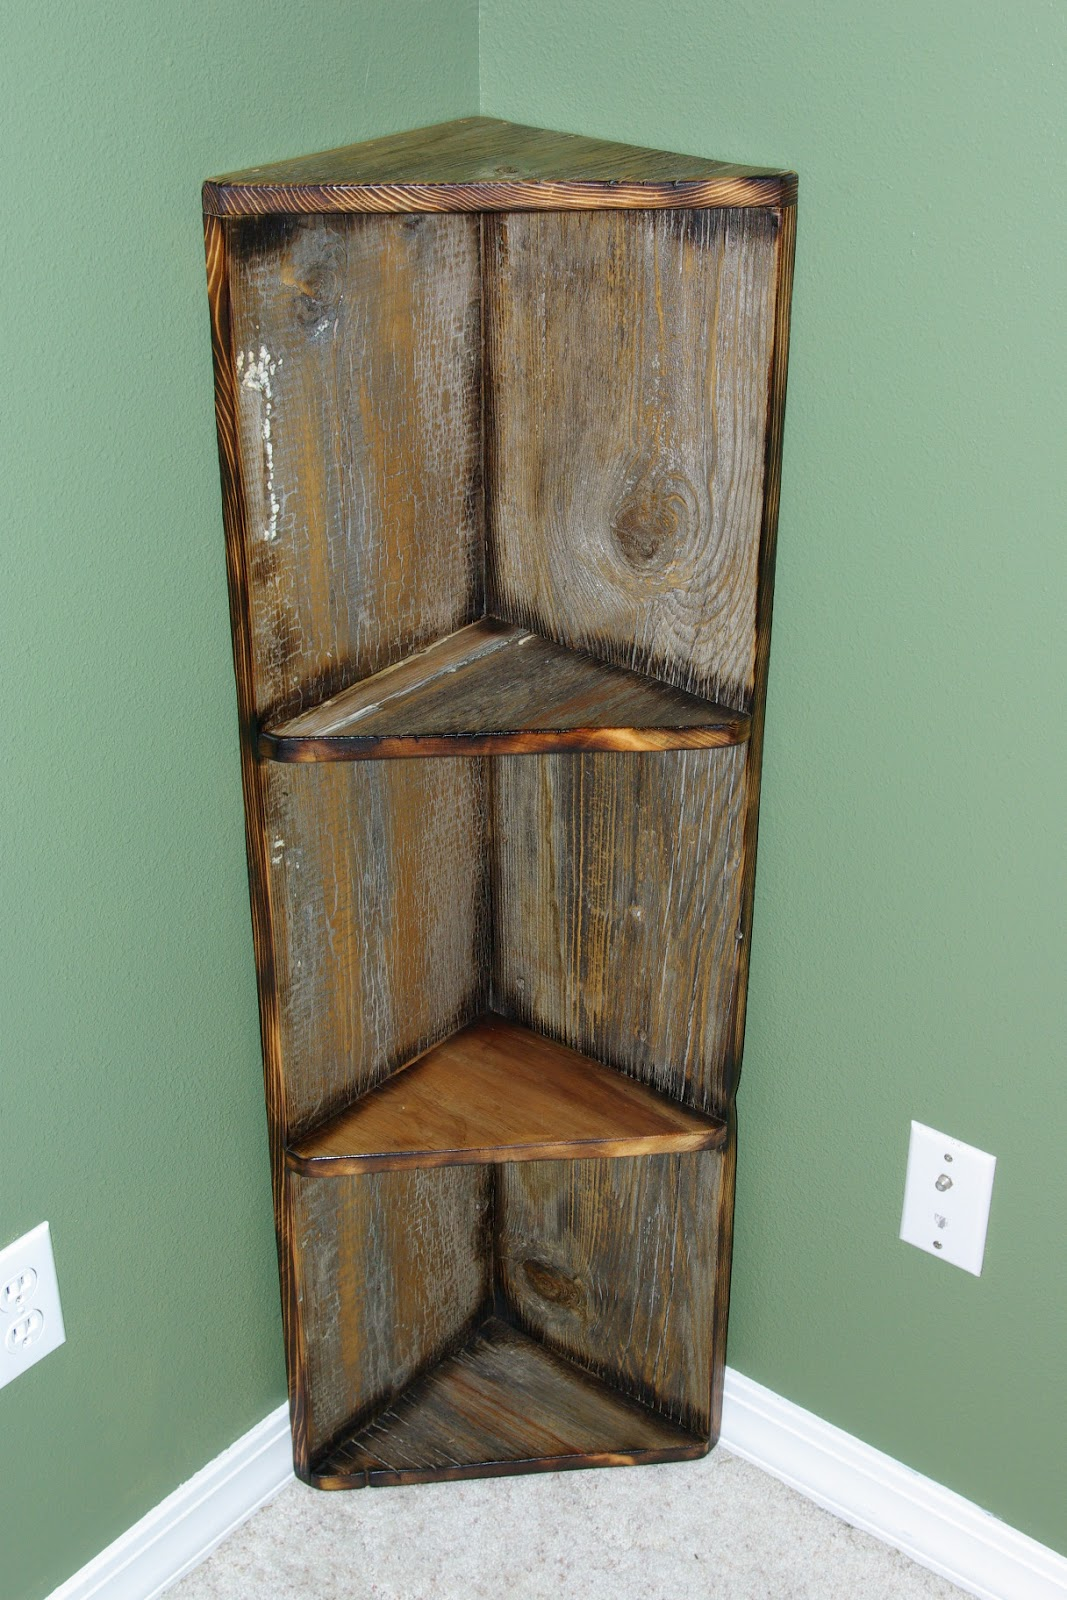 Reclaimed rustics barn wood corner shelf Corner shelf ideas